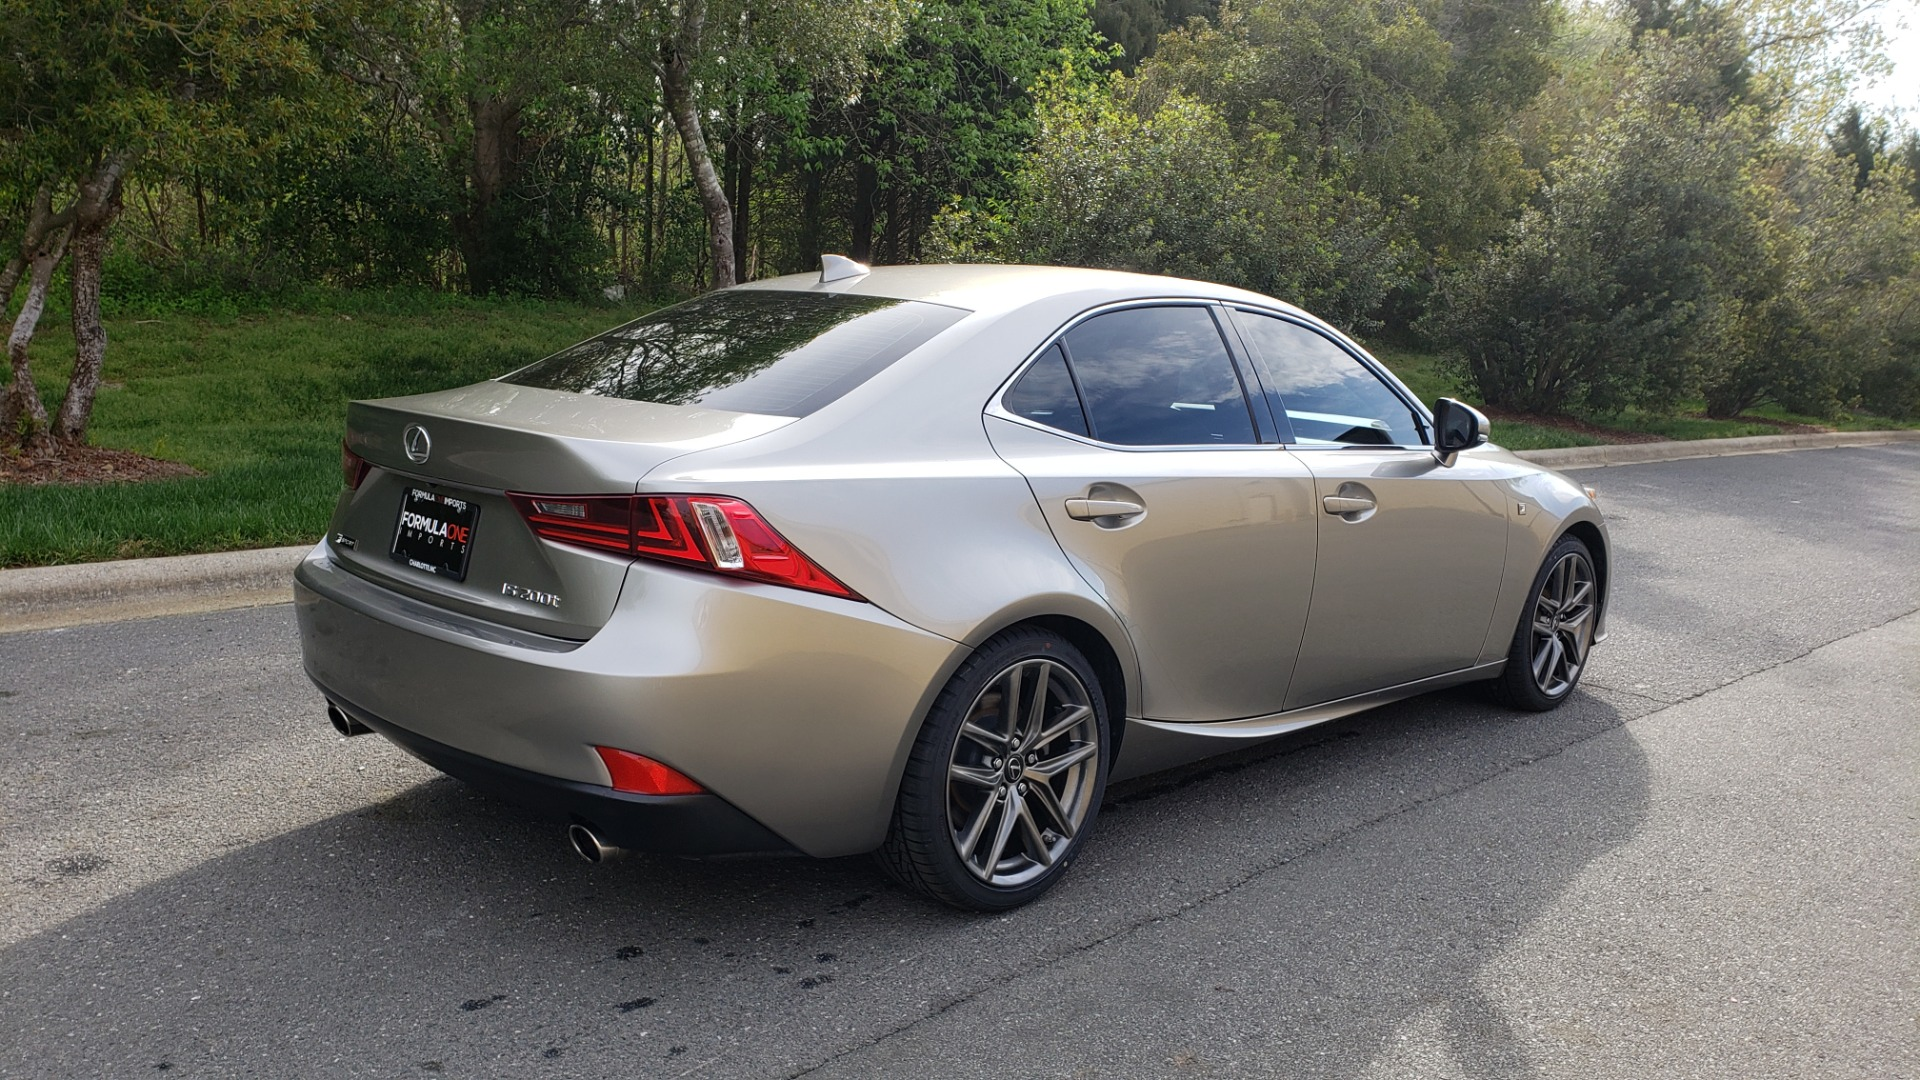 Used 2016 Lexus IS 200T F-SPORT / BSM / SUNROOF / VENTILATED SEATS / REARVIEW for sale Sold at Formula Imports in Charlotte NC 28227 6